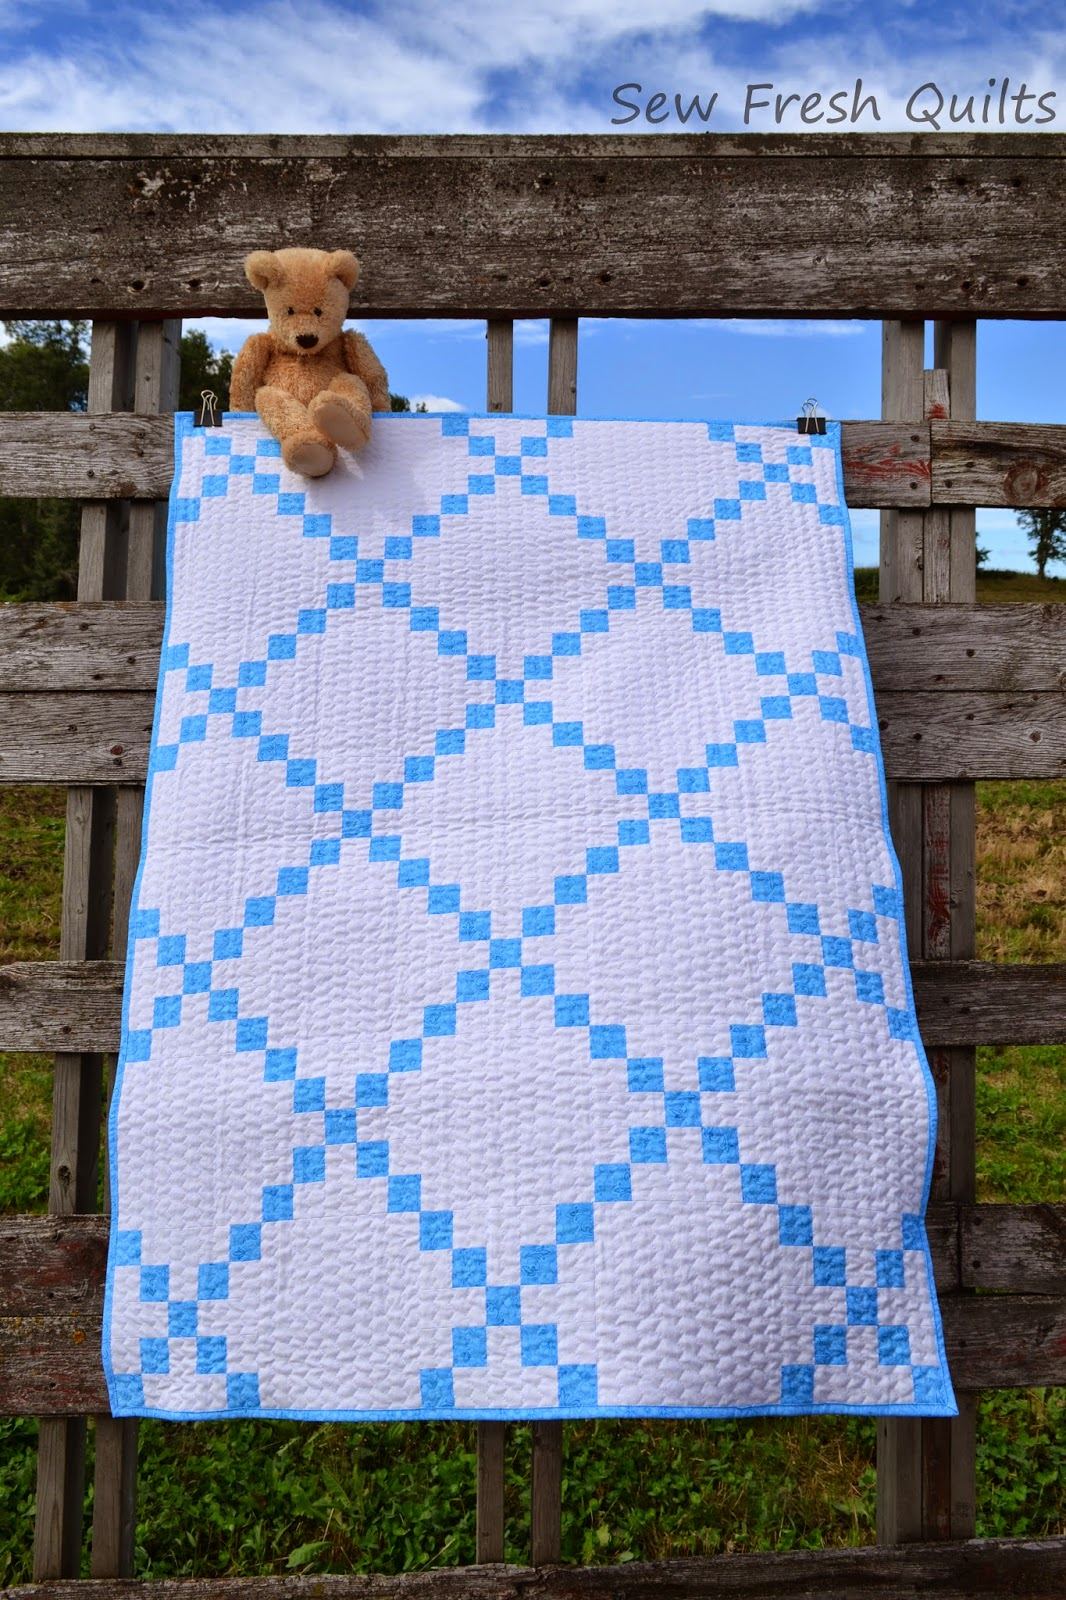 http://sewfreshquilts.blogspot.ca/2014/09/country-lanes-irish-chain.html